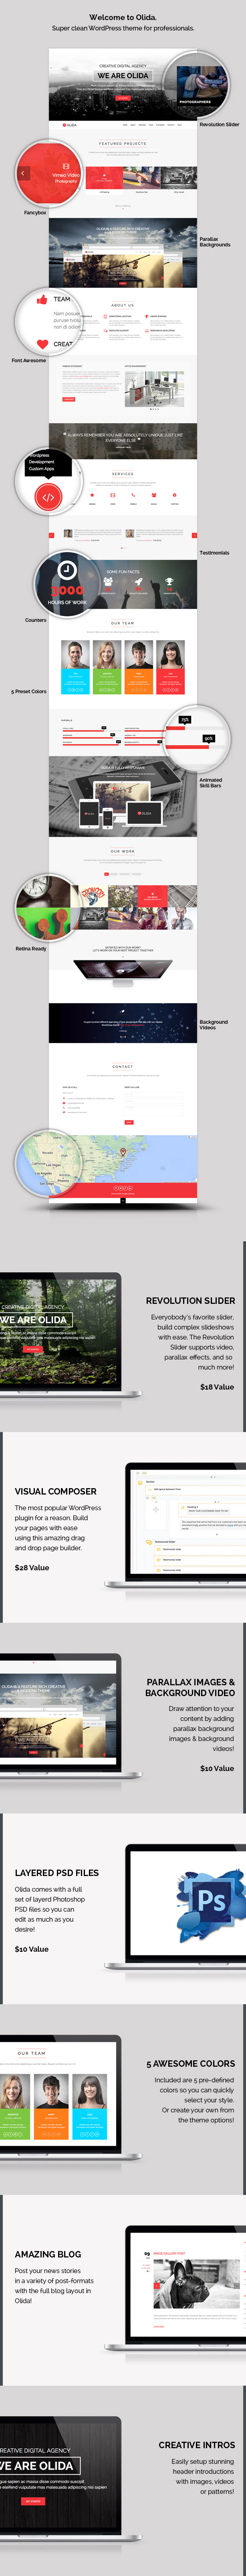 WordPress theme Olida - Creative Parallax One Page WP Theme (Creative)